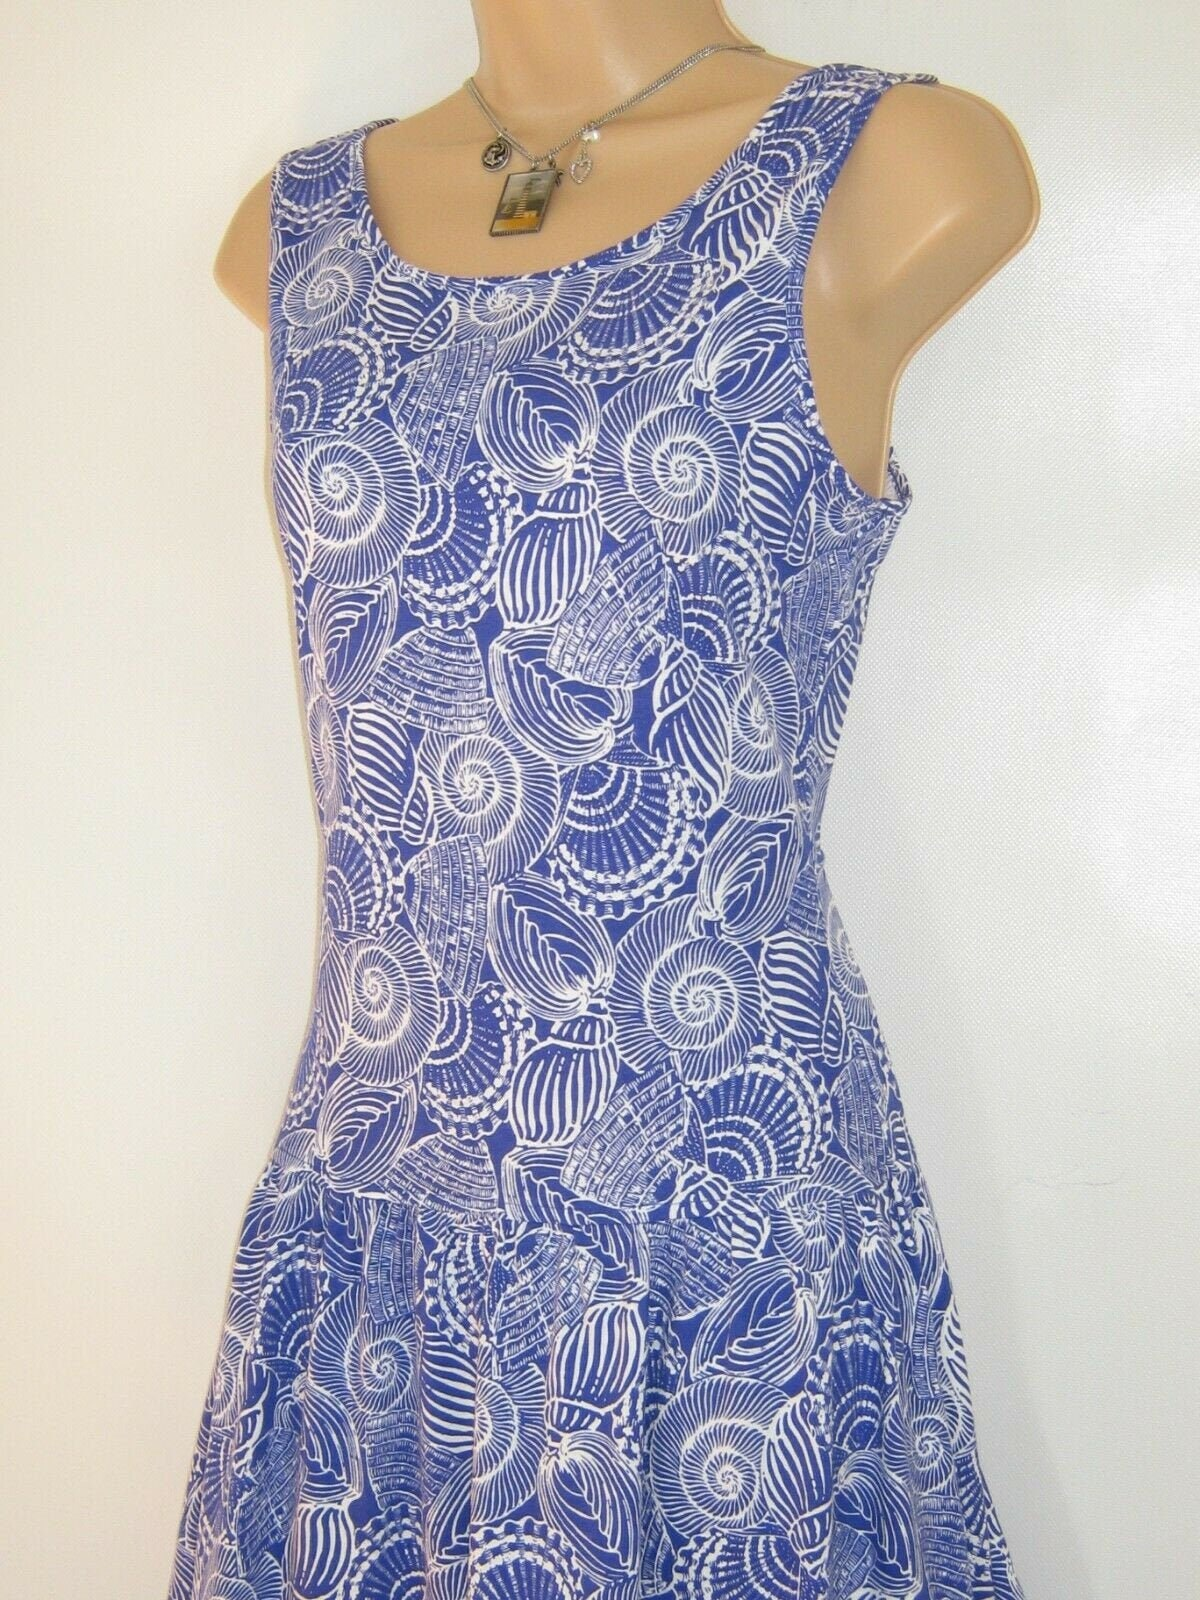 Vintage Scarf Styles -1920s to 1960s Laura Ashley Vintage 91 Ultramarine Seashell Print Cotton Jersey Sundress, Small - With Original Sales Tag $198.70 AT vintagedancer.com